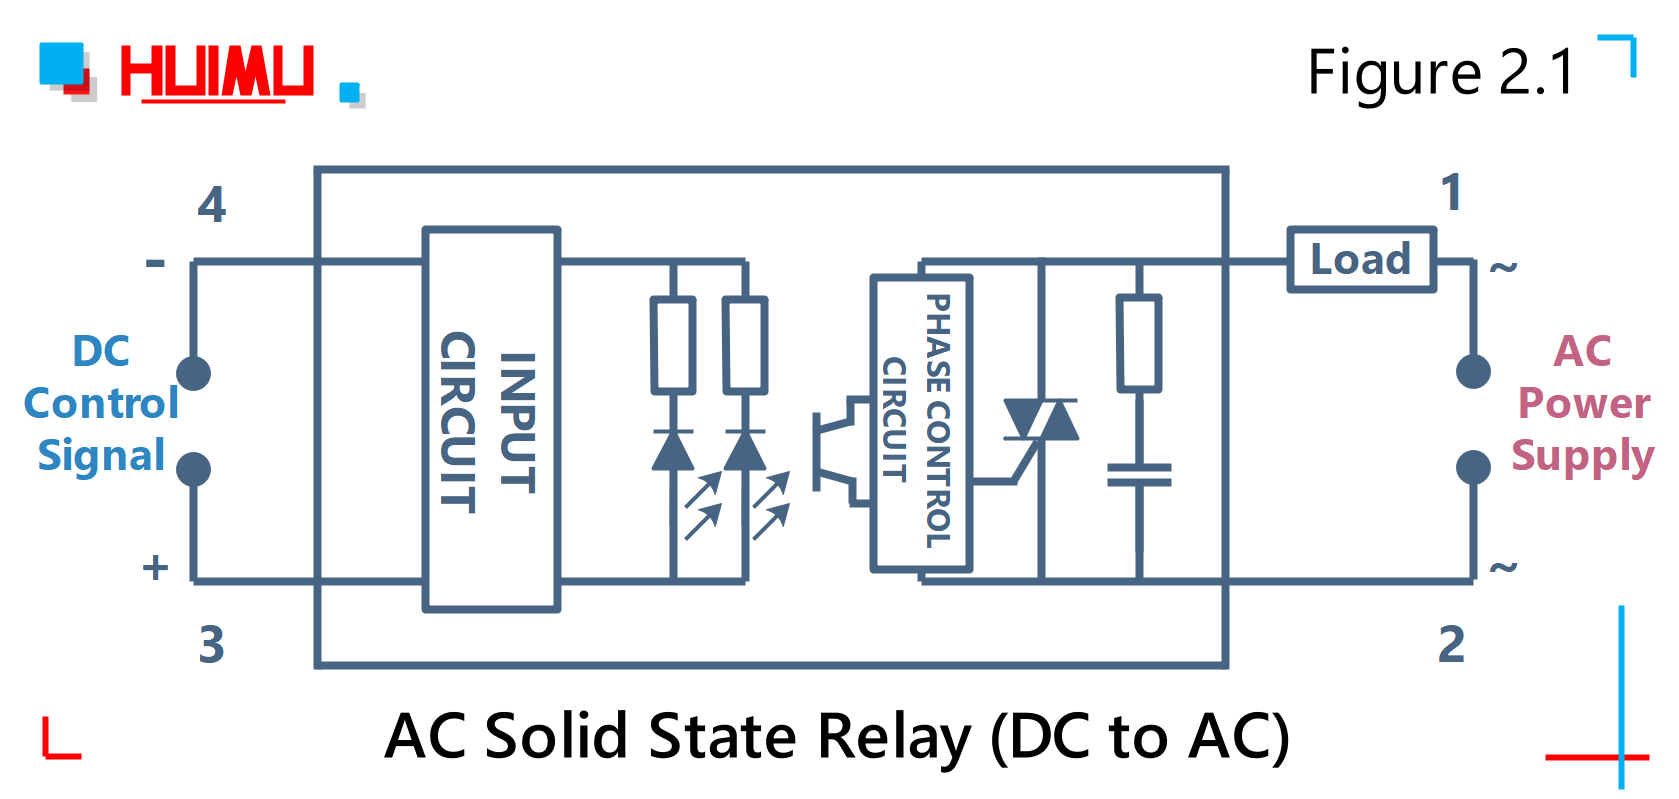 wiring diagram and circuit diagram of mgr mager ac solid state relay (dc to  ac